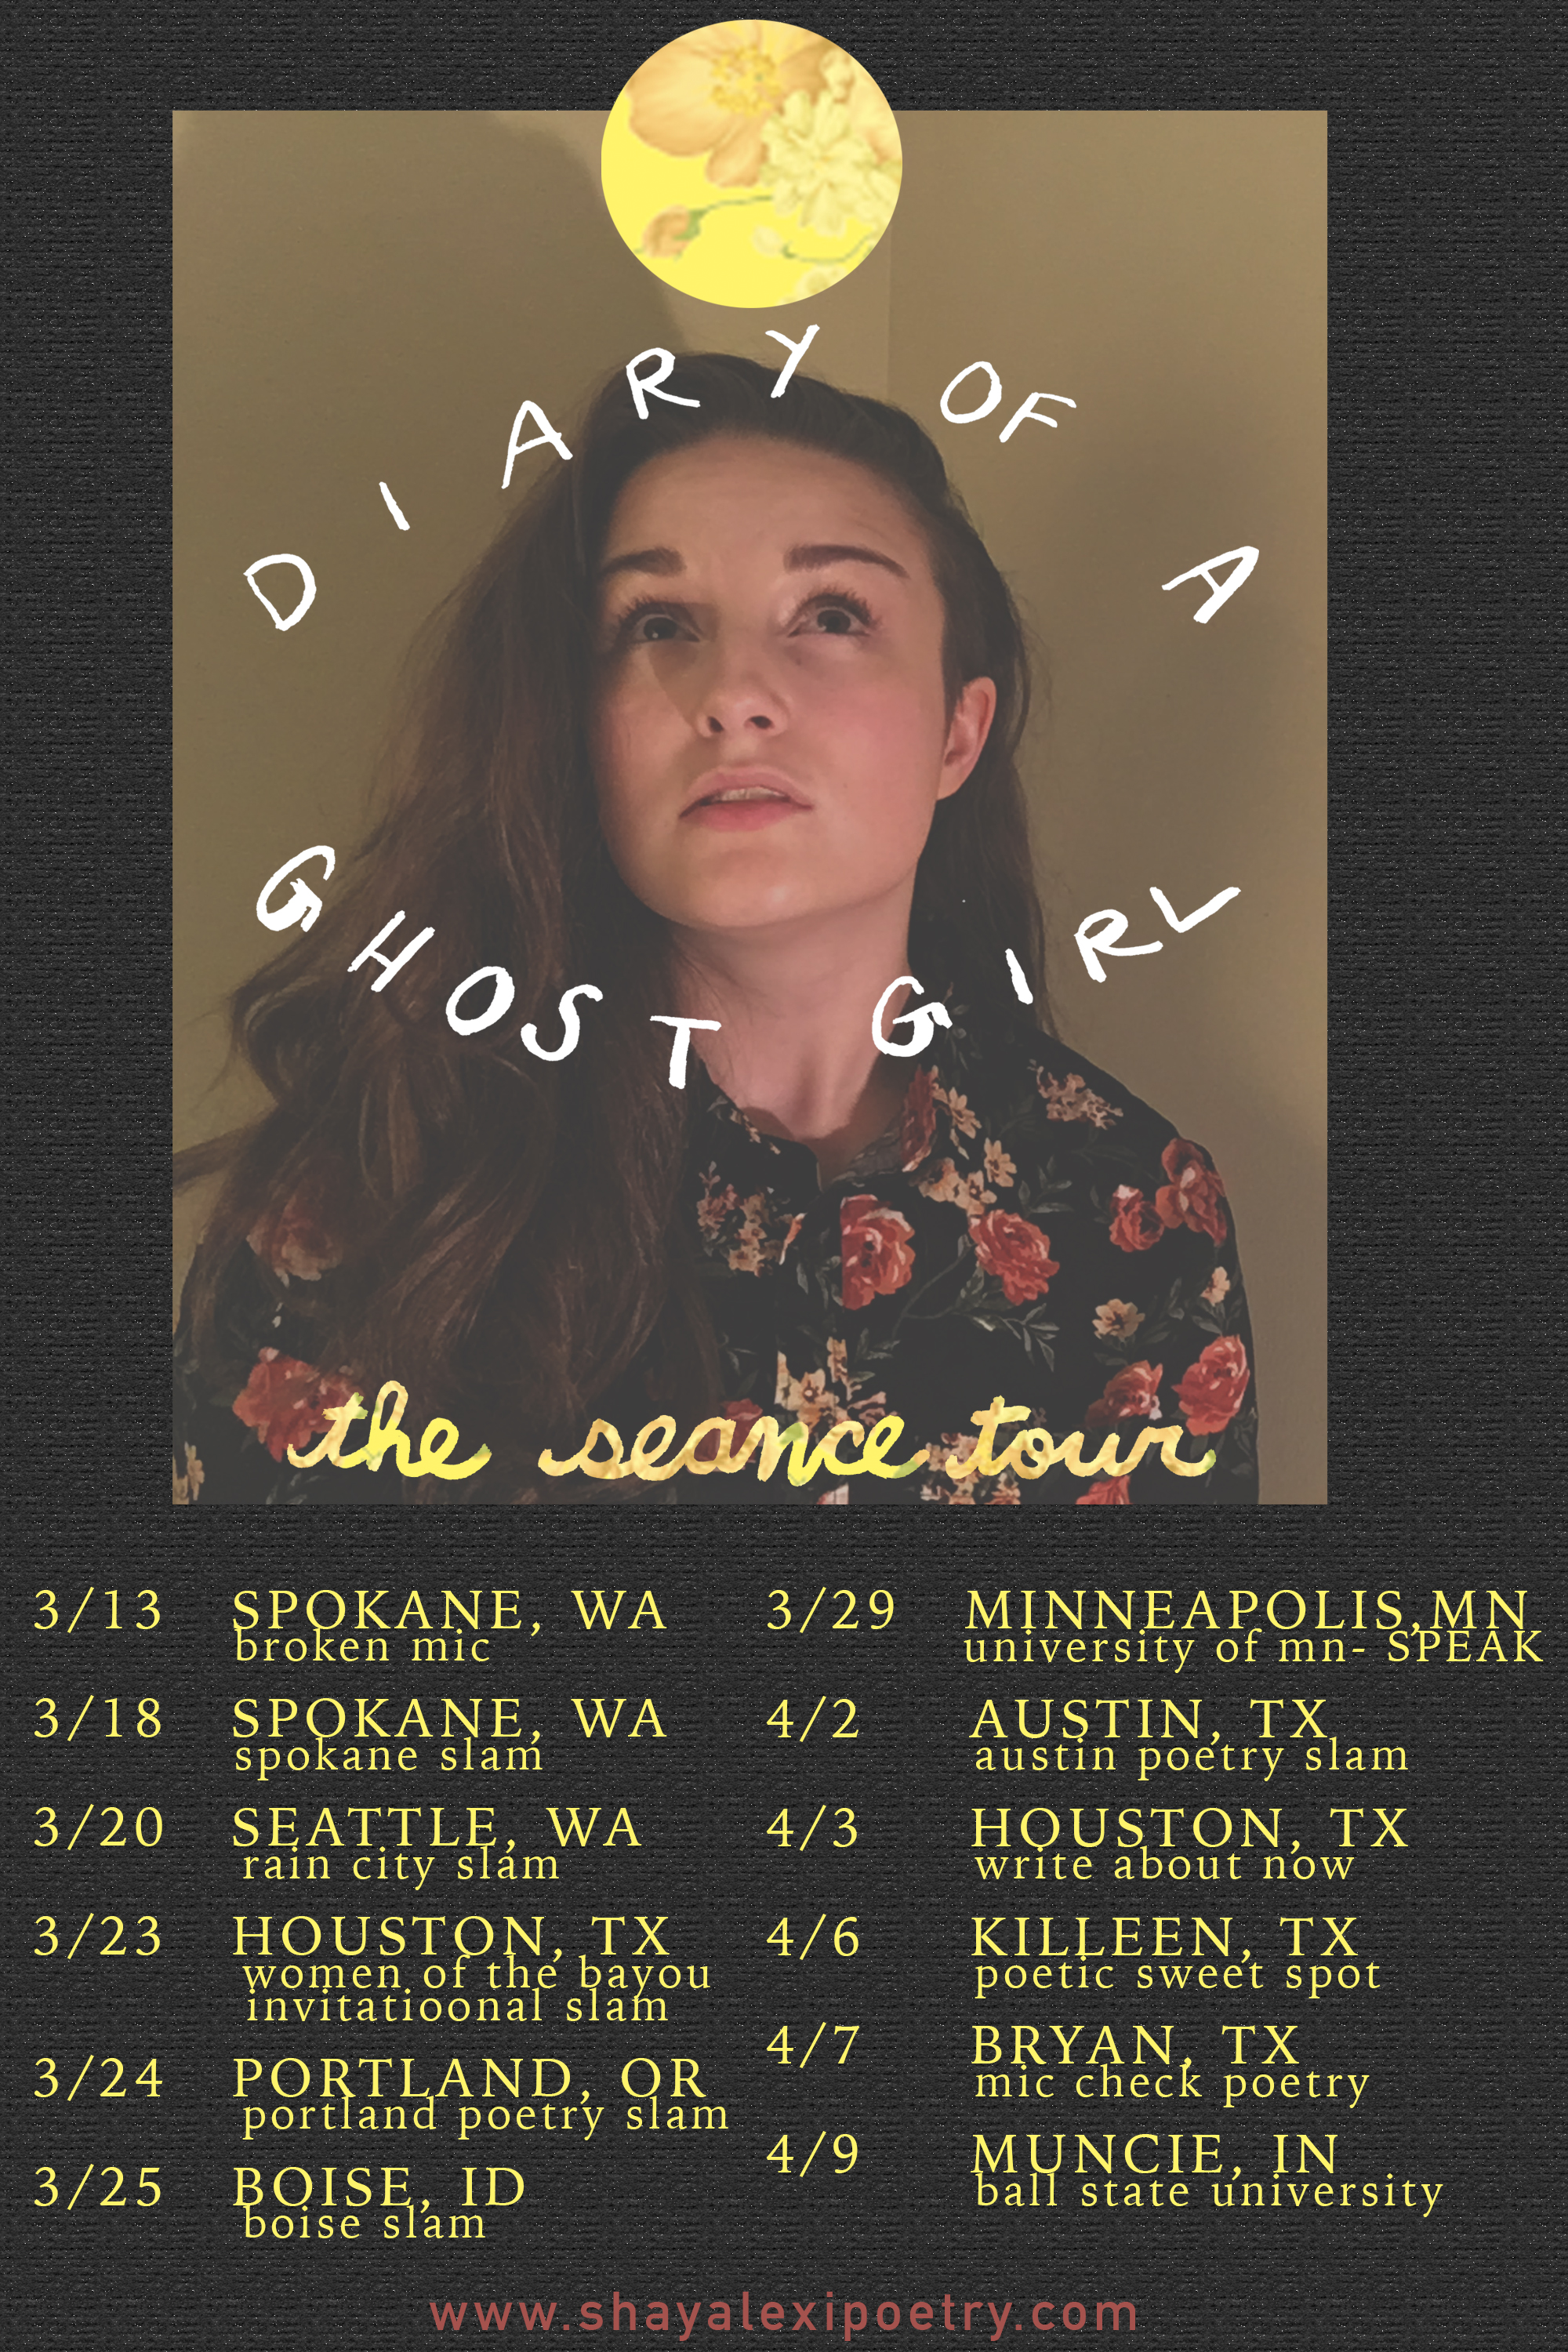 THE SEANCE TOUR - Check out Shay on their first leg of their book tour! Dates for April and May coming soon- including Michigan, Florida, NYC, Boston, Colorado, and more!